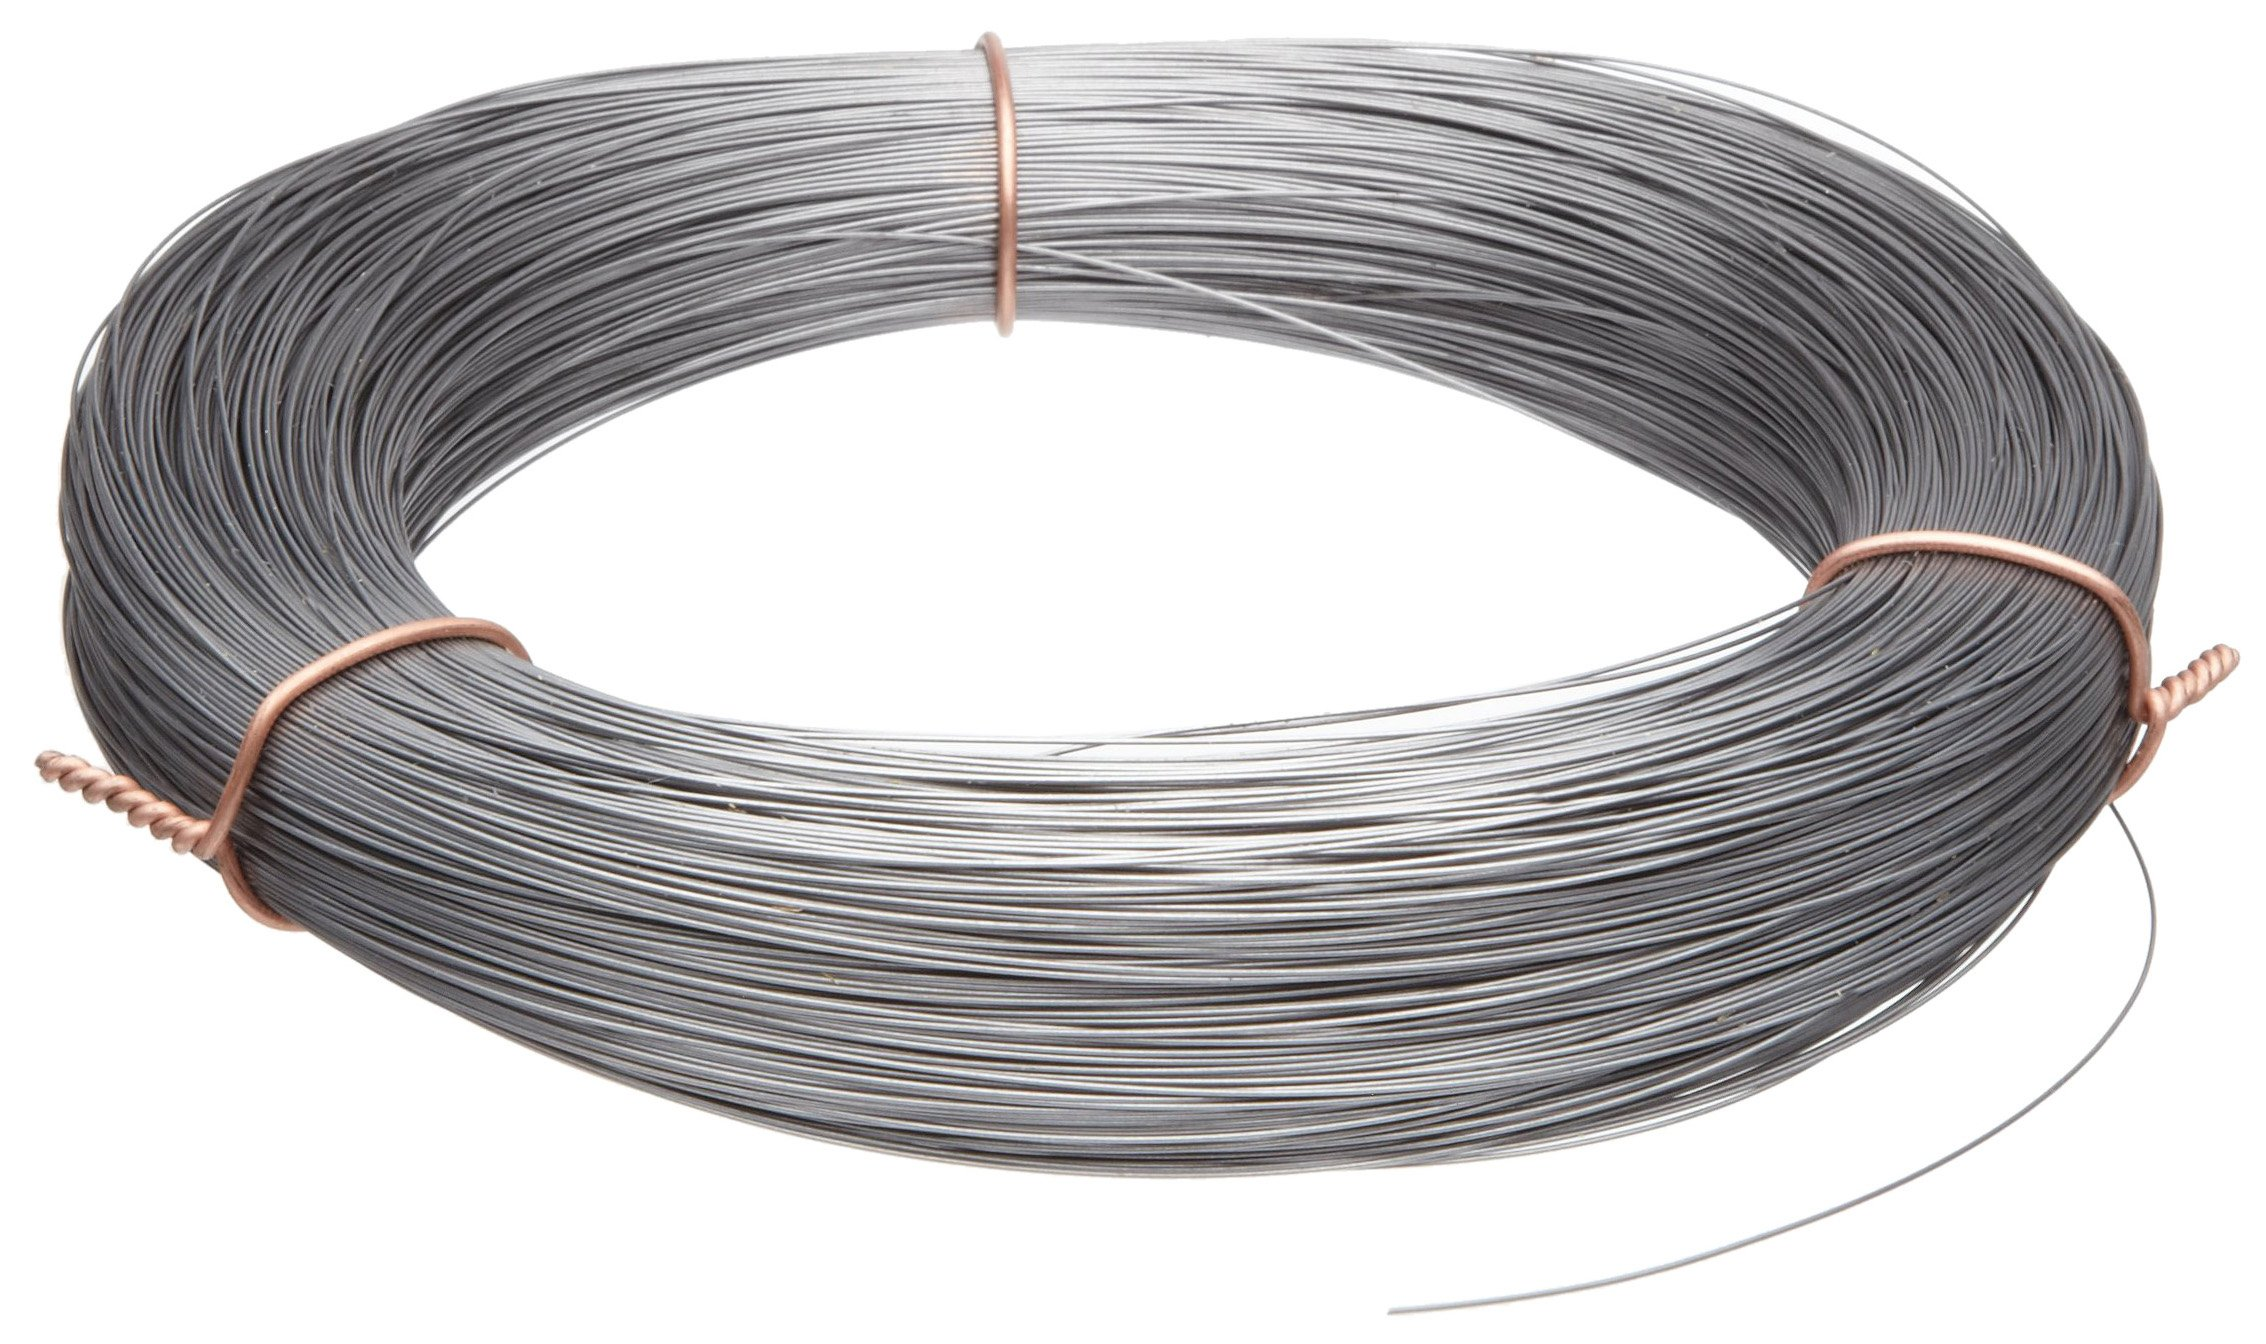 High Carbon Steel Wire, Mill Finish #2B (Smooth) Finish, Grade #2B Smooth, Full Hard Temper, Meets ASTM A228 Specifications, 0.170'' Diameter, 13' Length, Precision